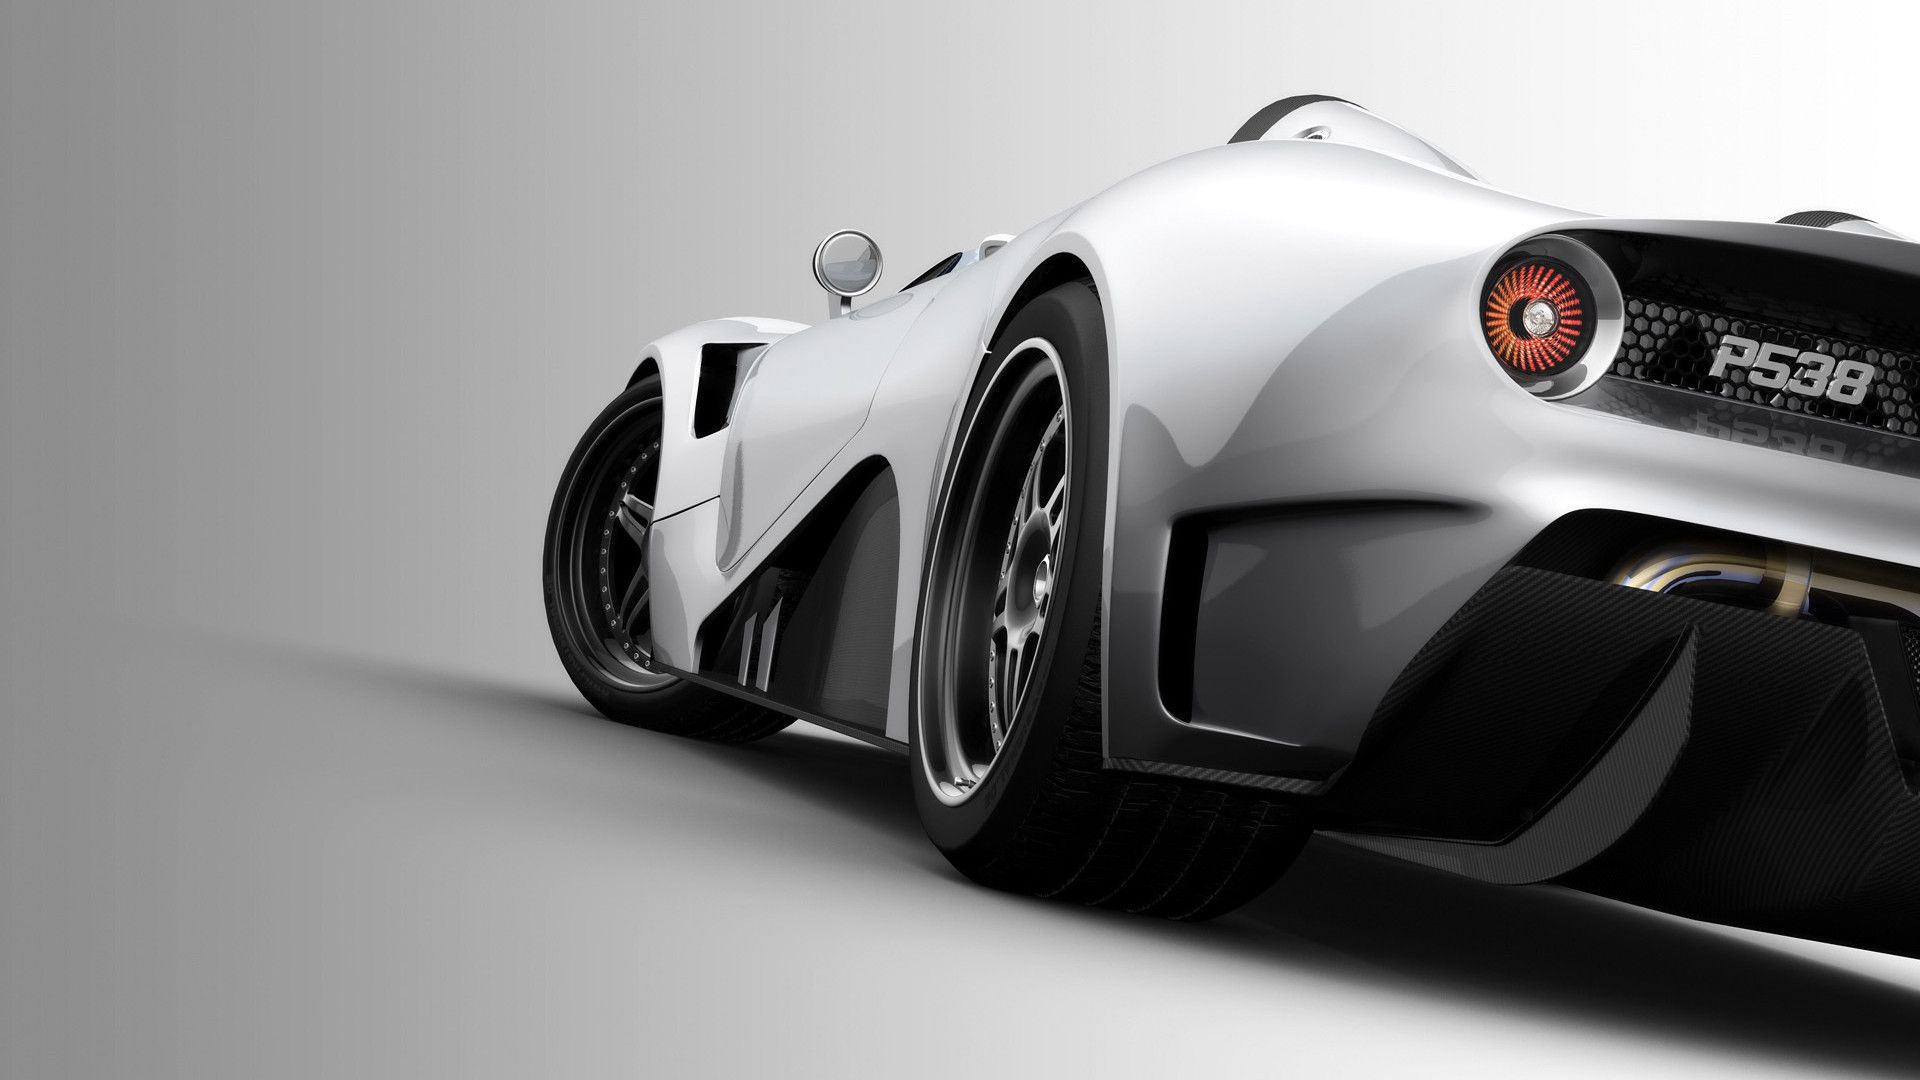 HD Wallpapers Cars 1080p